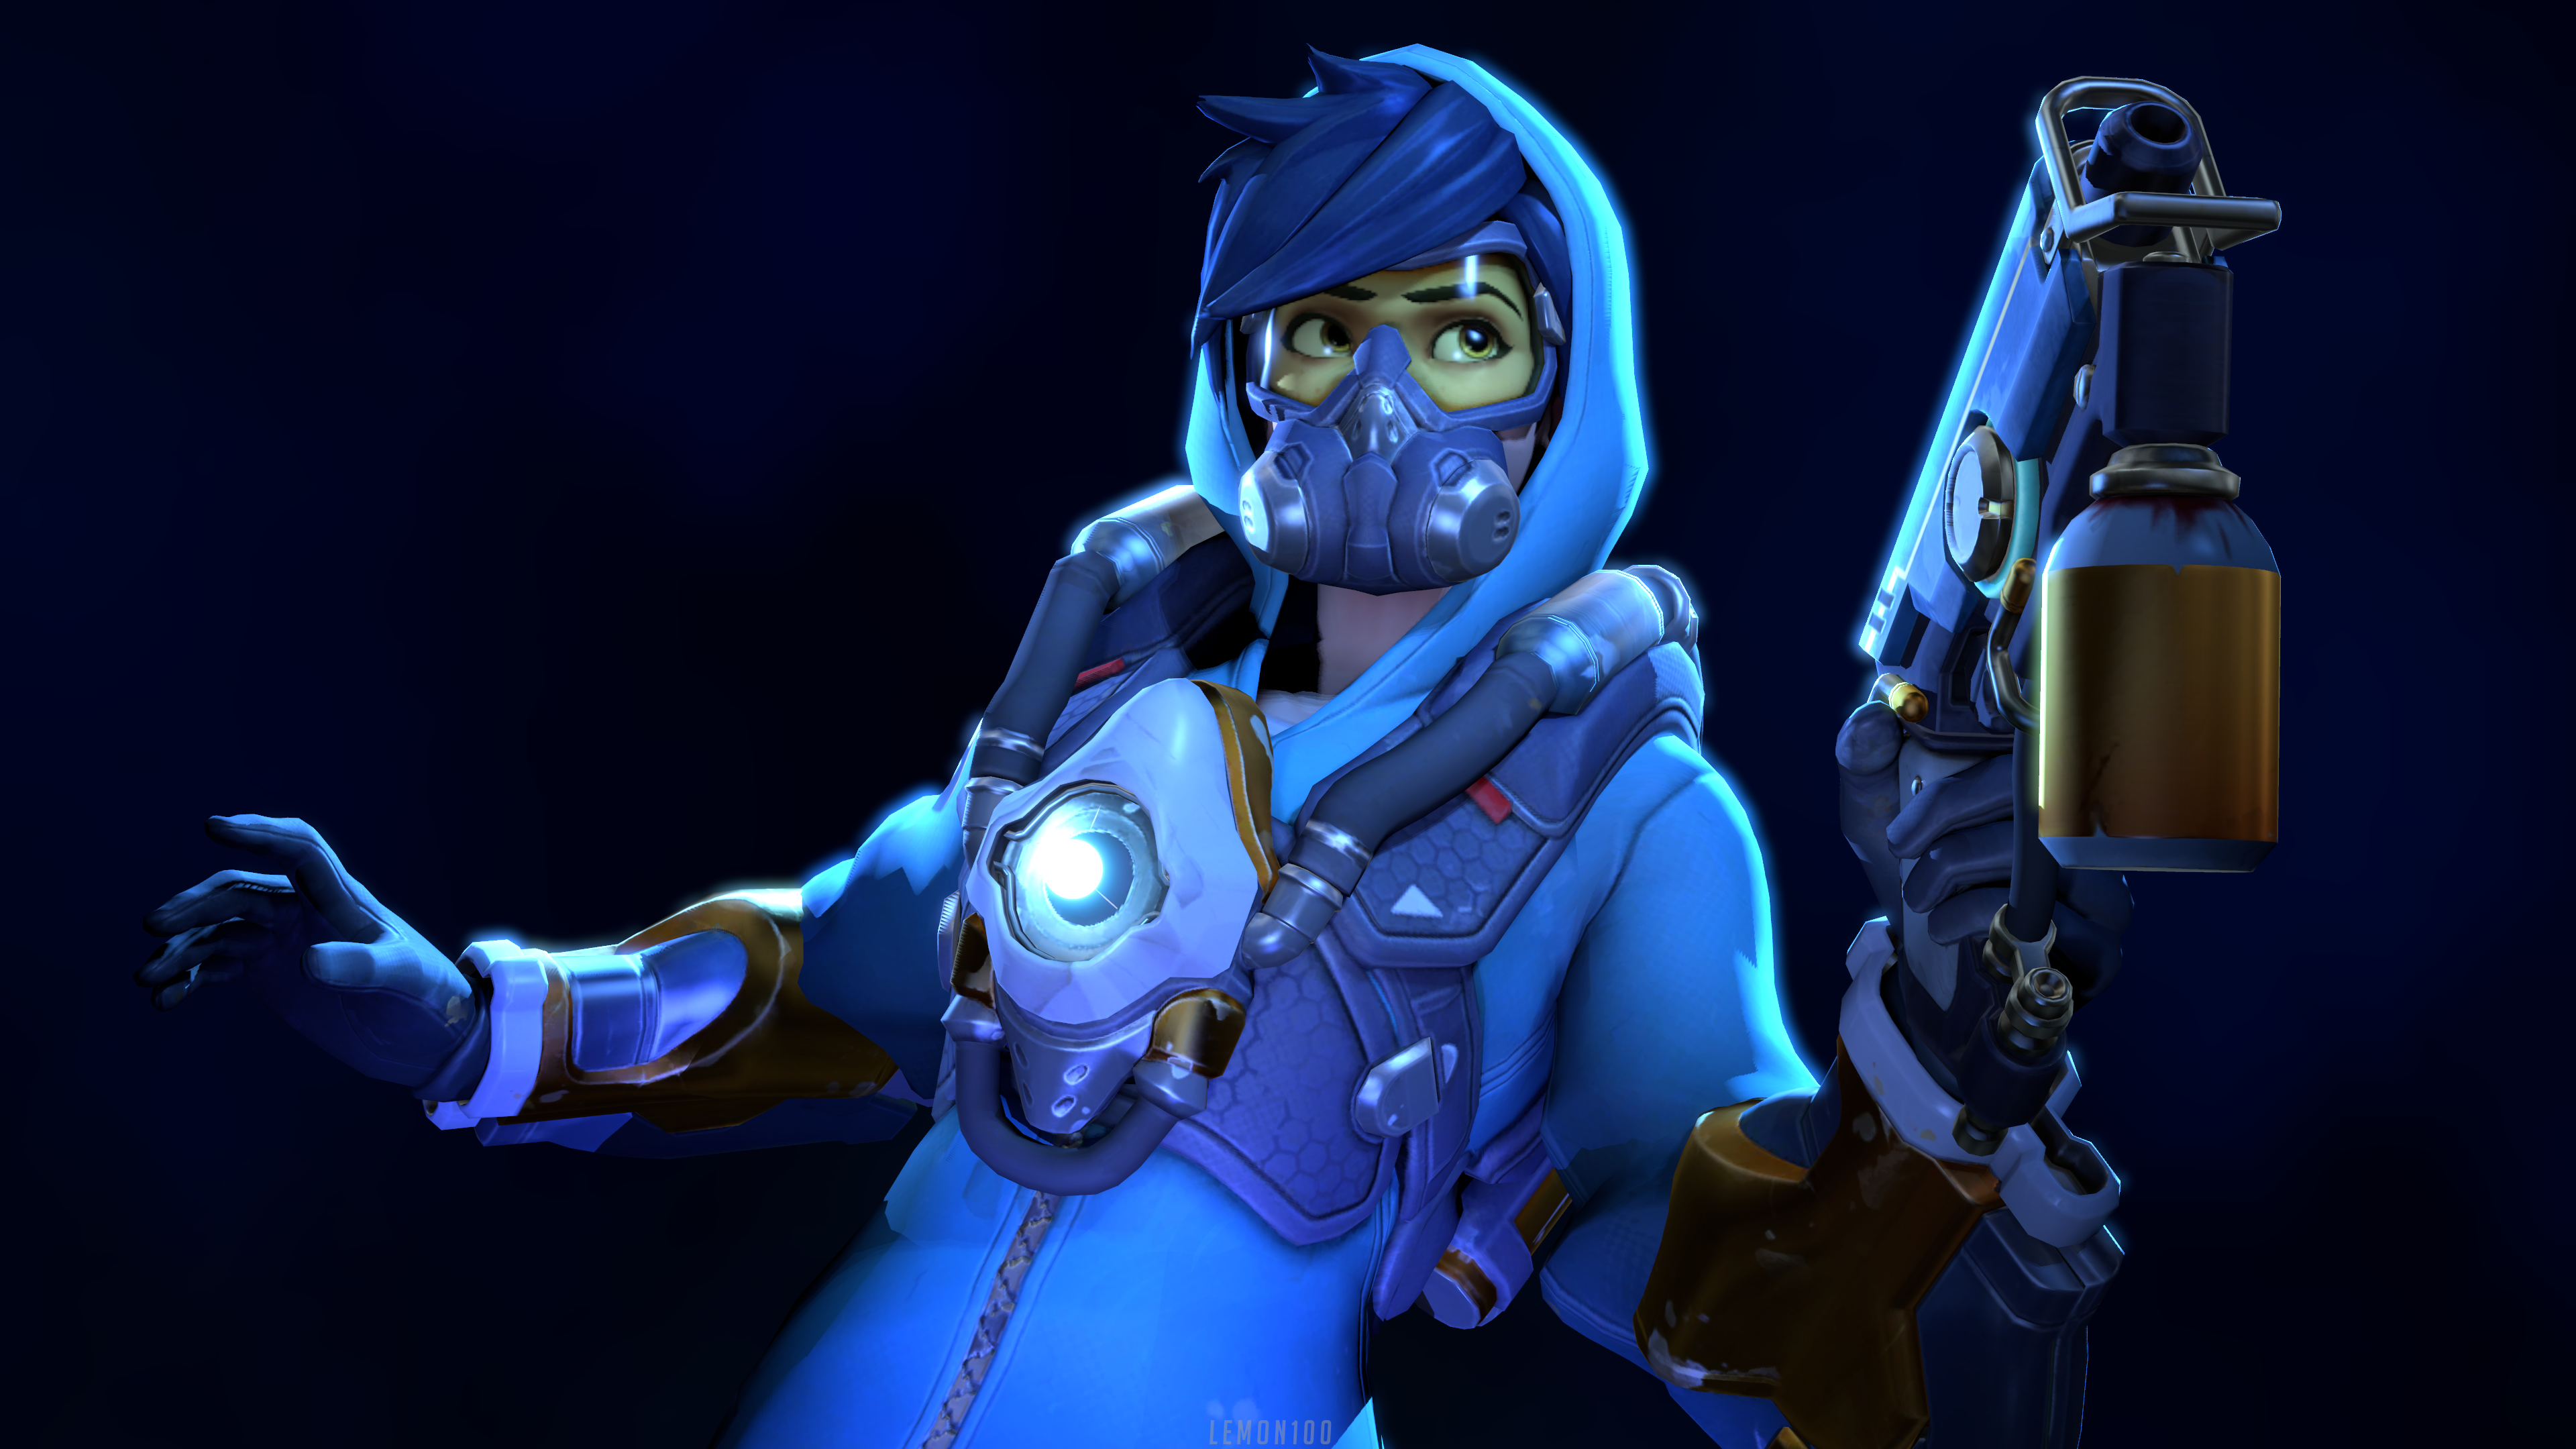 overwatch agent tracer wallpapers - photo #15